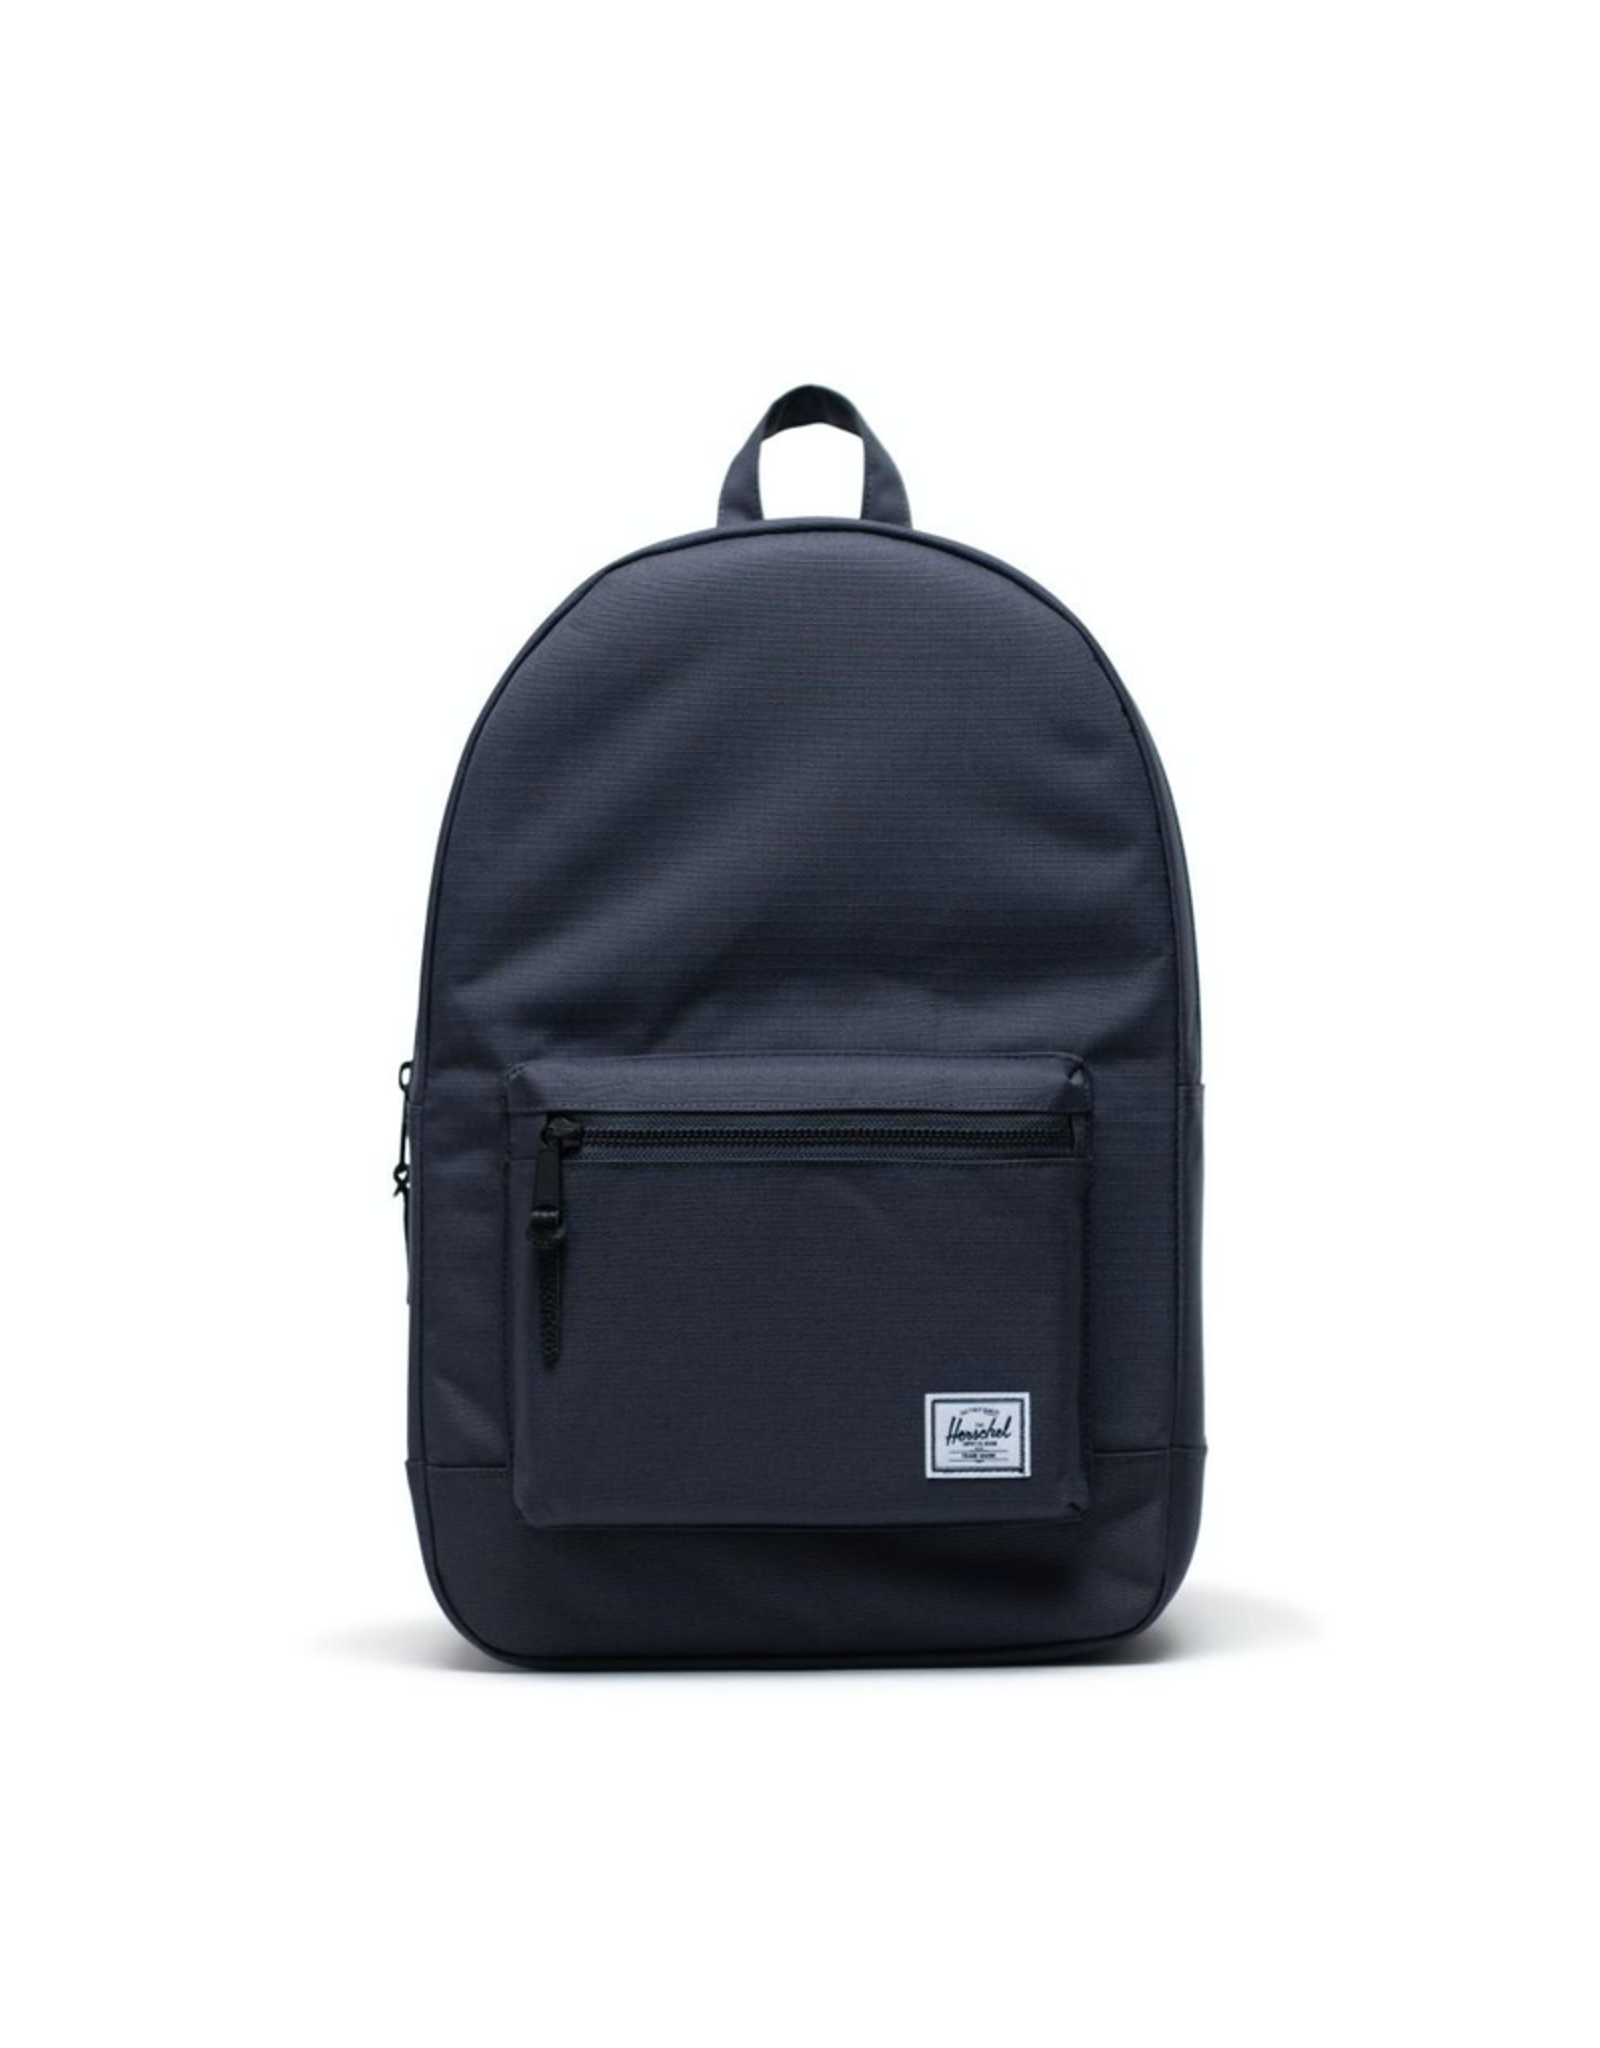 Herschel Supply Co. Classic Backpack | XL in Periscope Ripstop, 30L